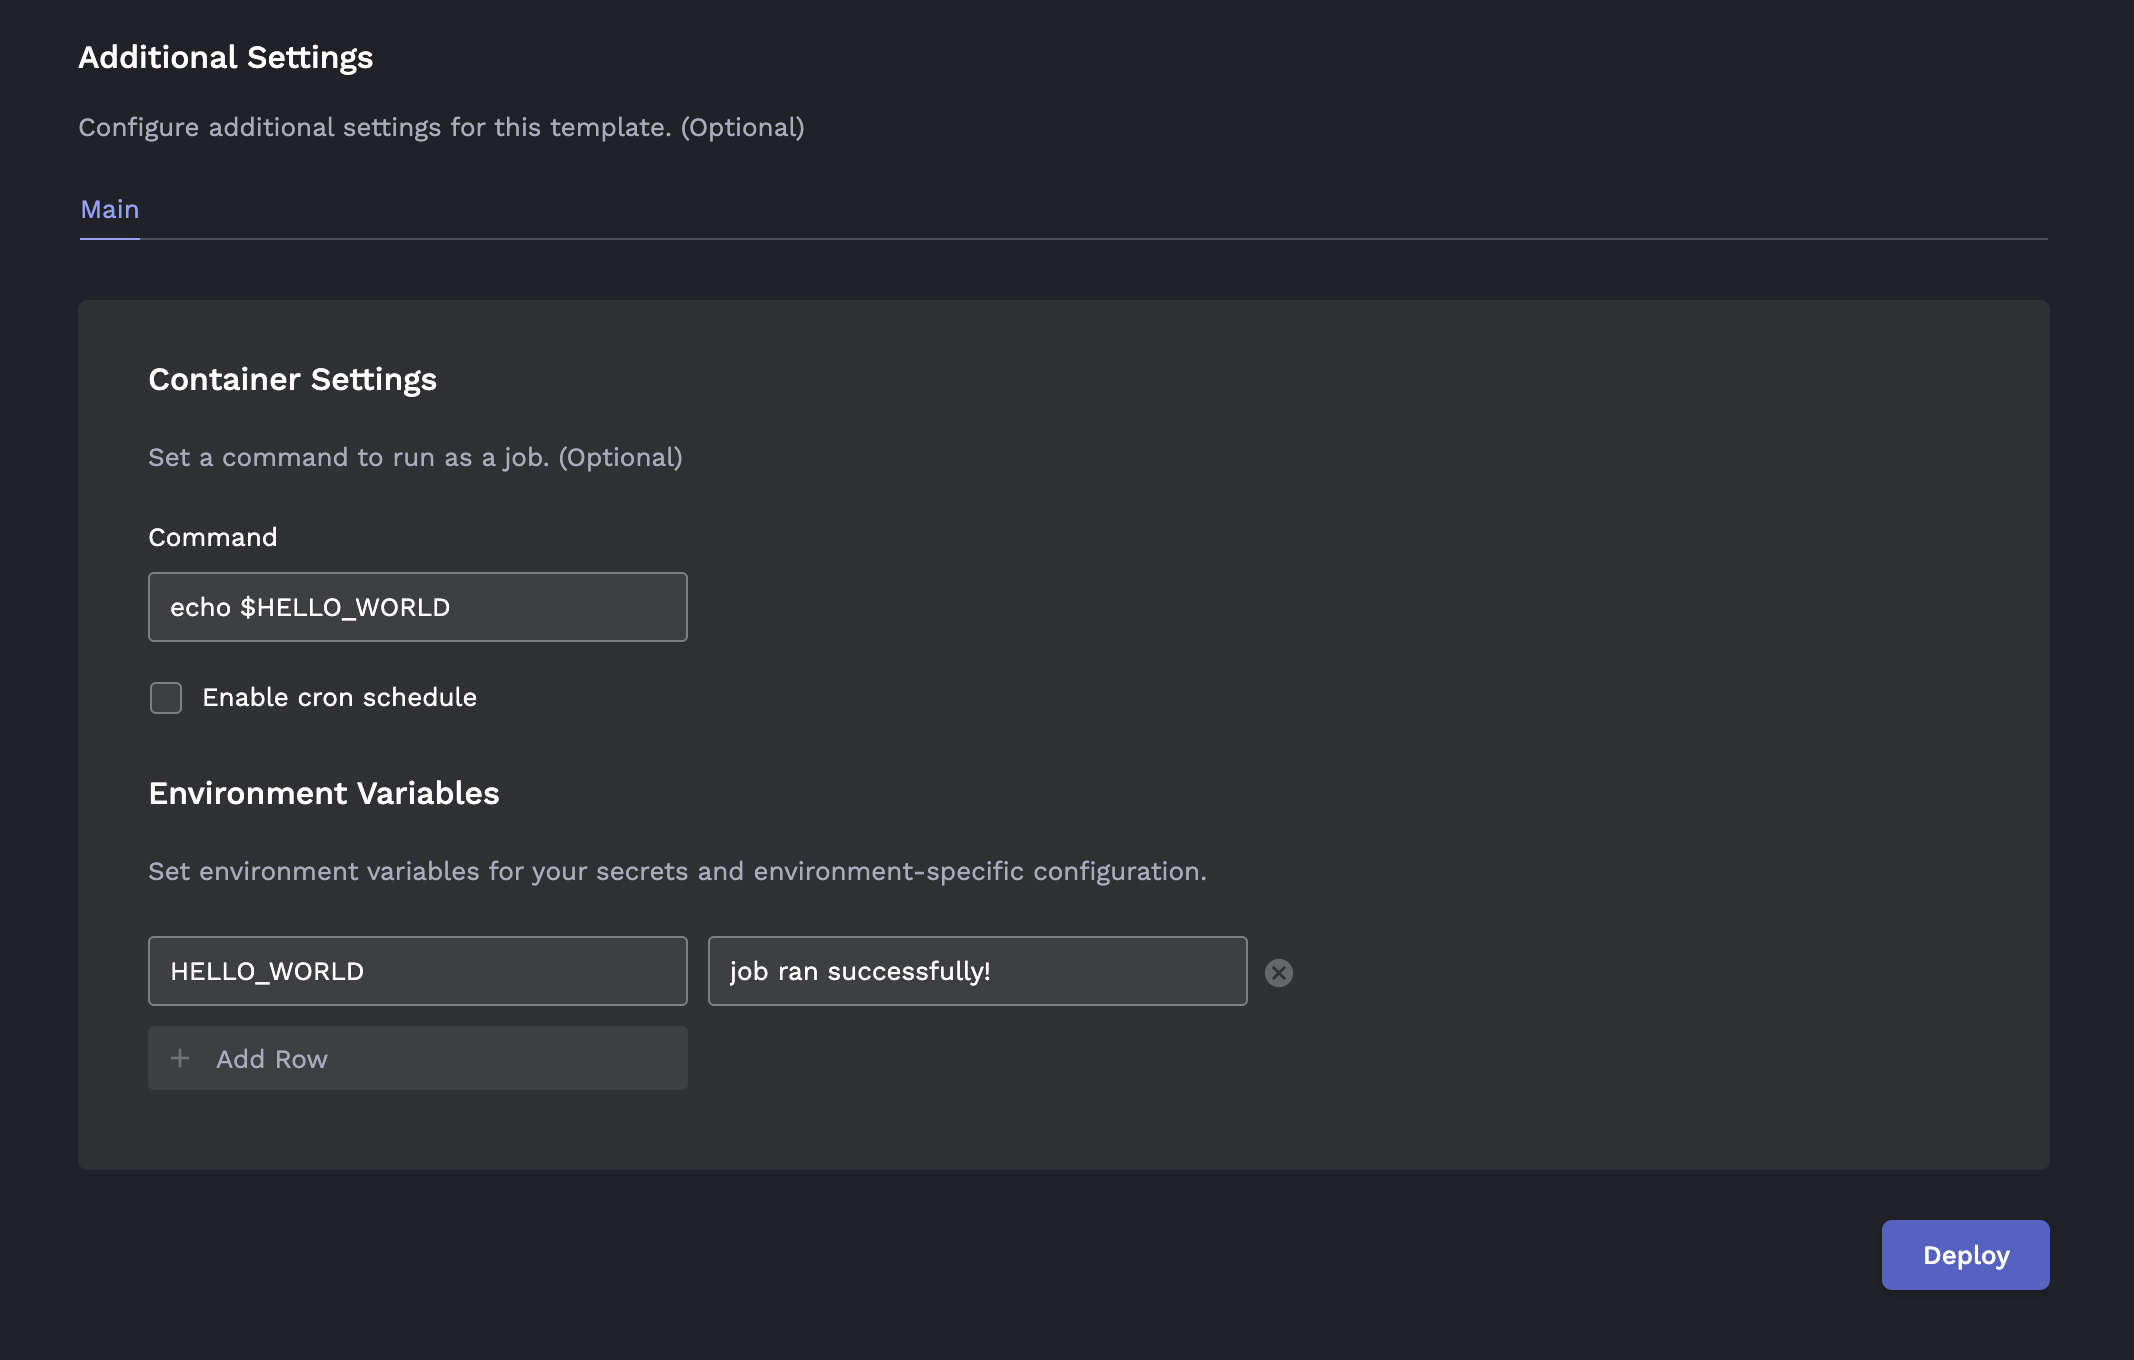 One-time job additional settings